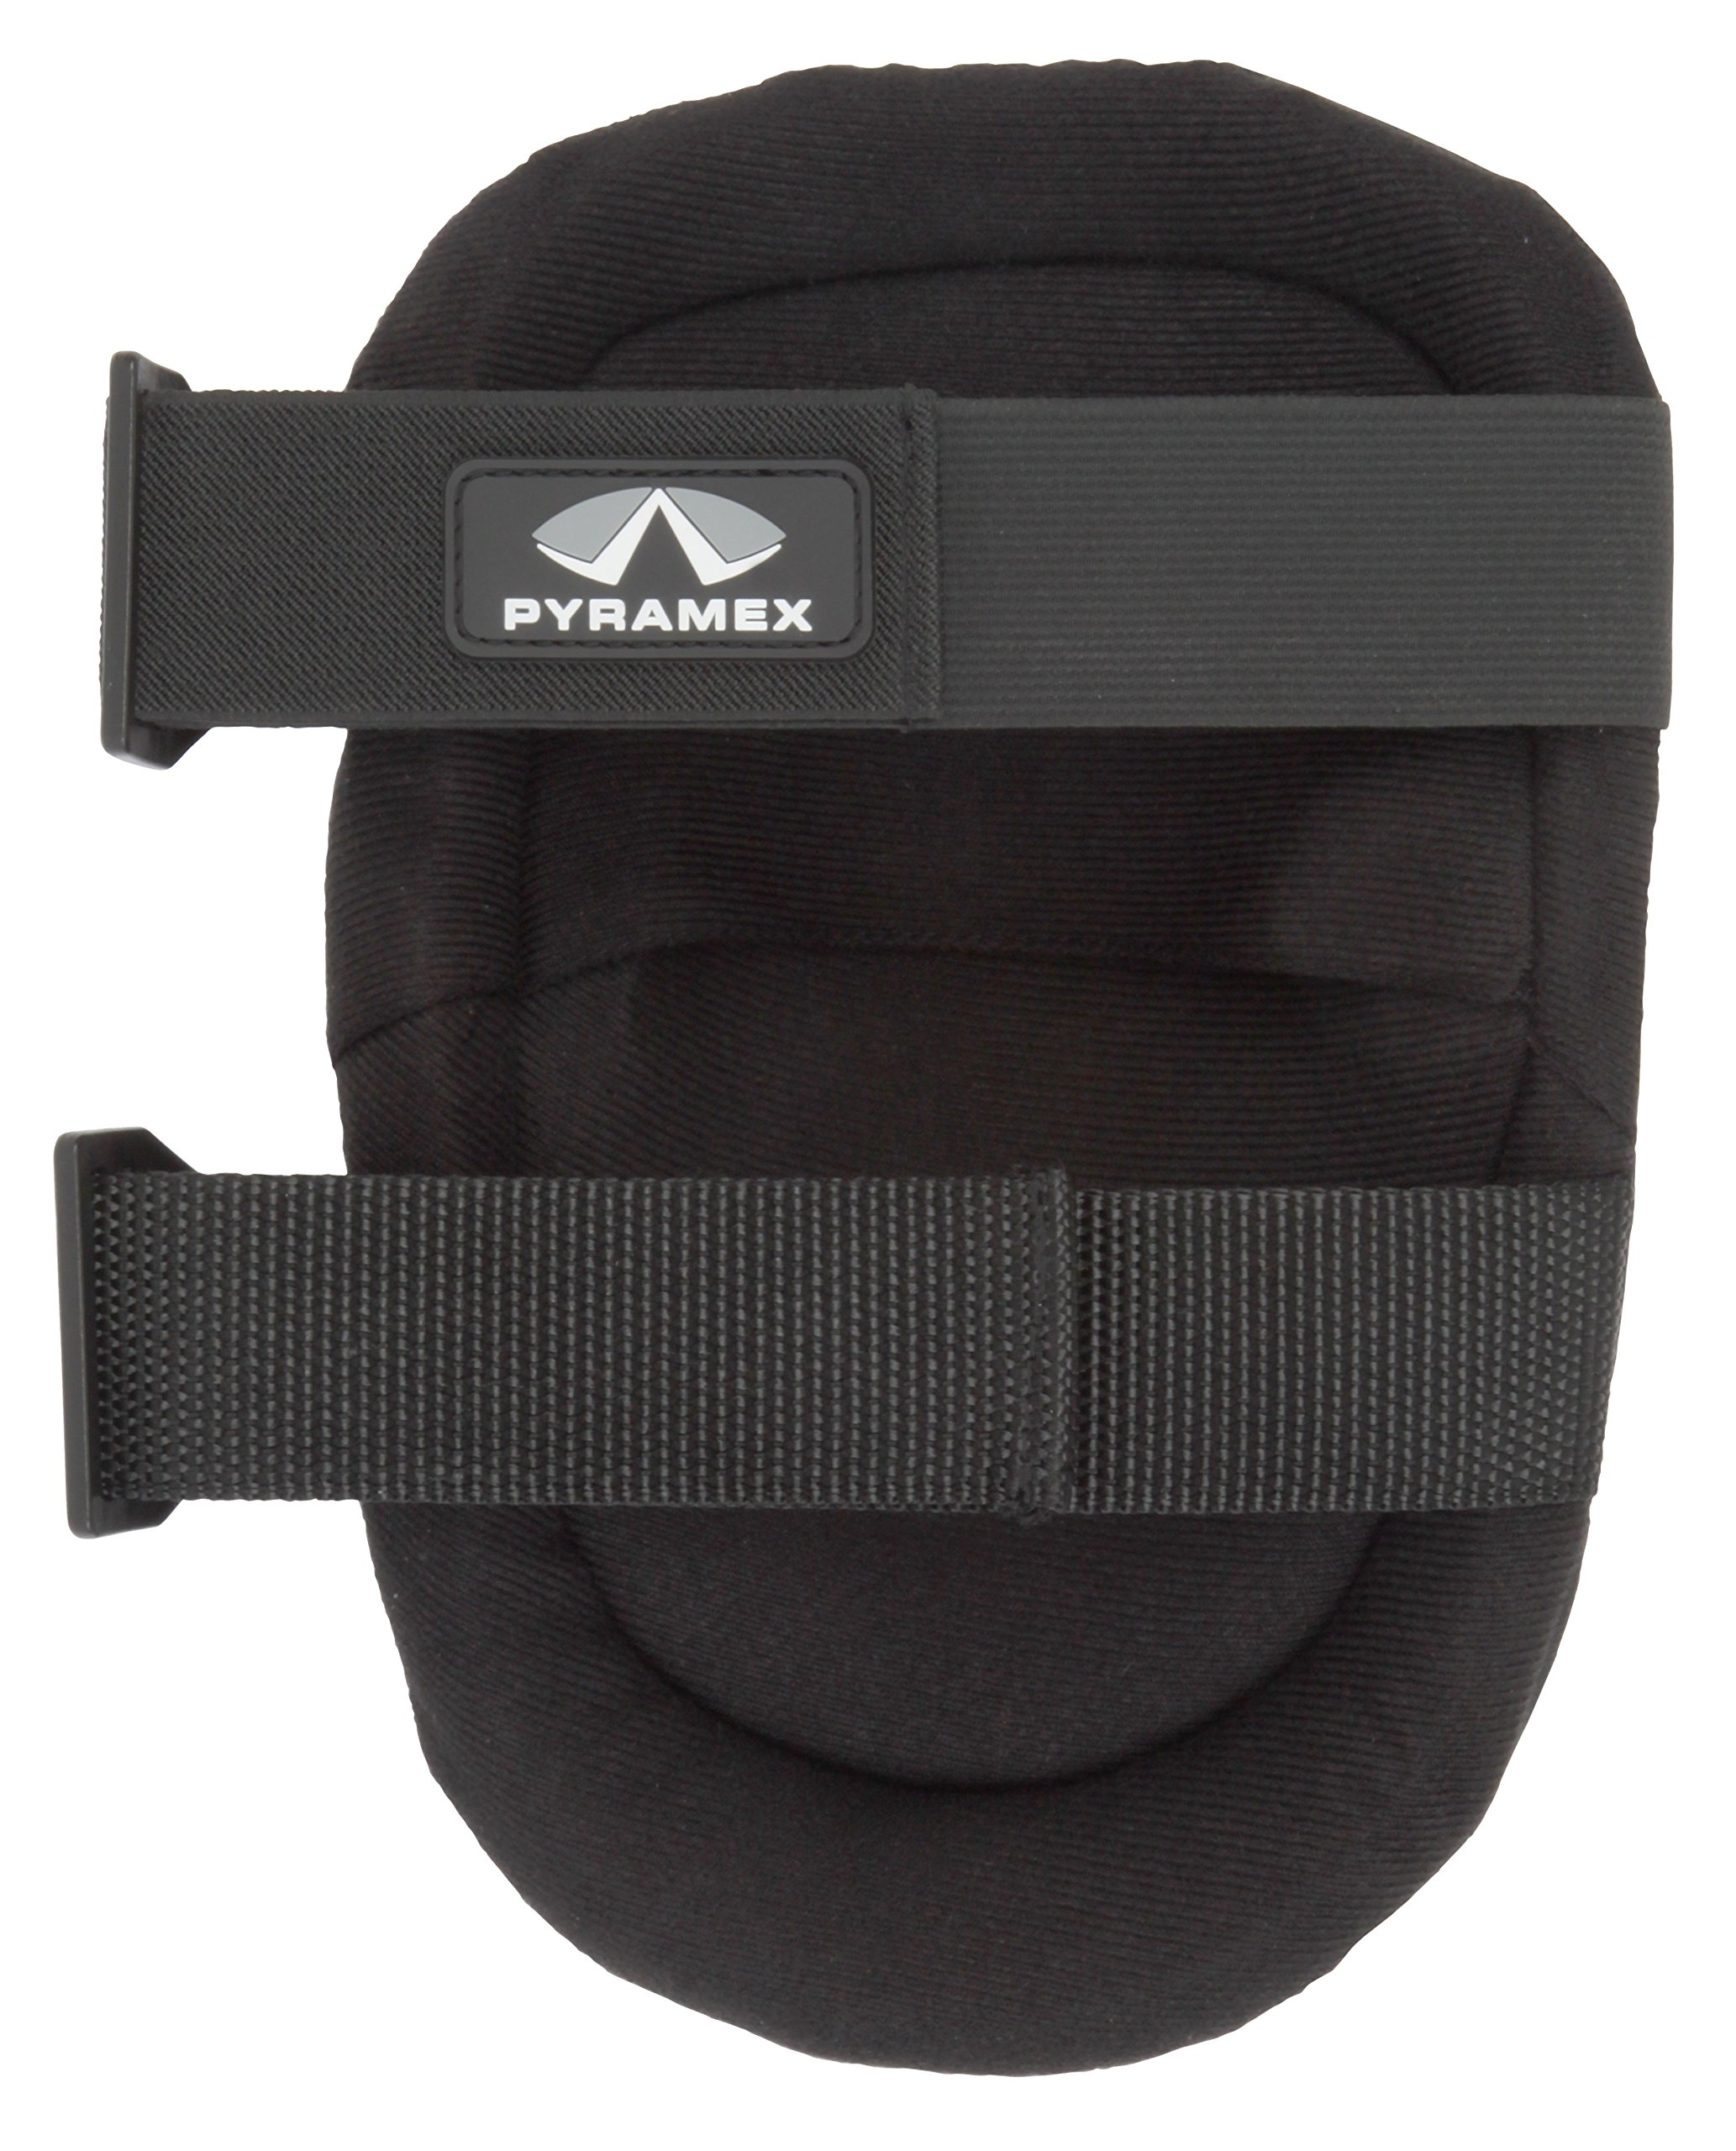 Pyramex Safety BKP200NM Non-Marring Rubber Knee Pads, One Size Fits All, One Size Fits Most